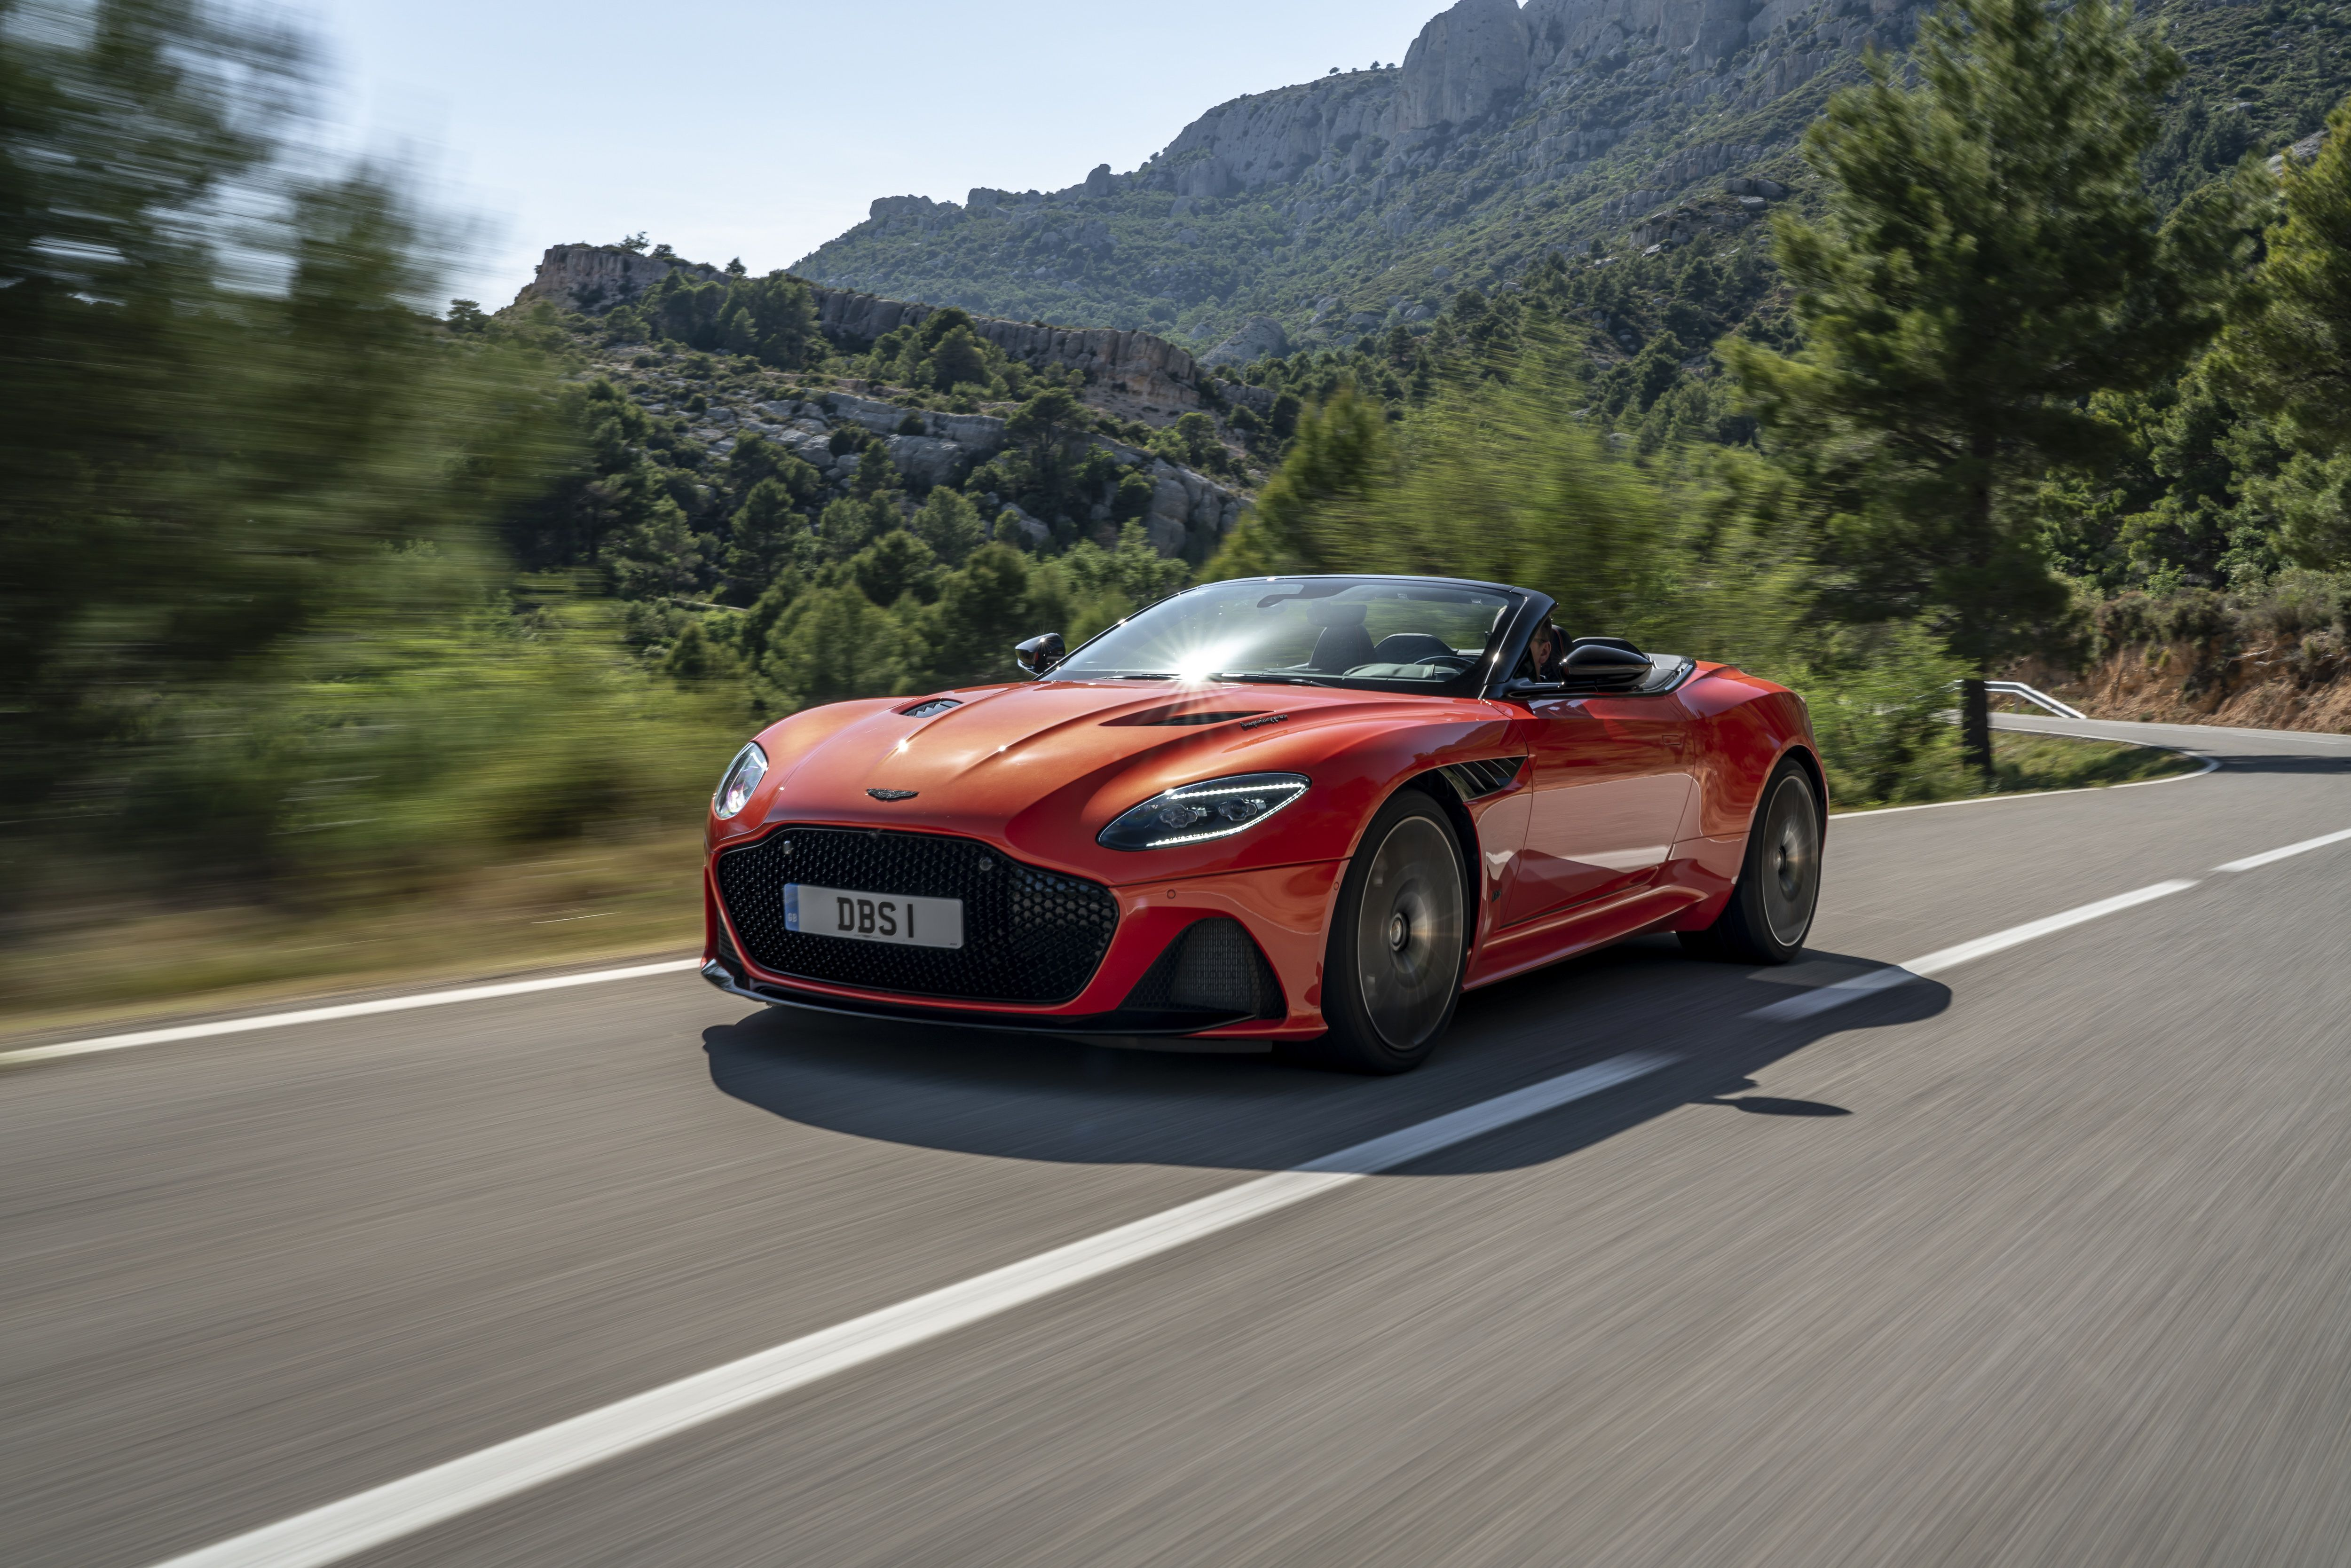 2020 Aston Martin Dbs Superleggera Volante First Drive